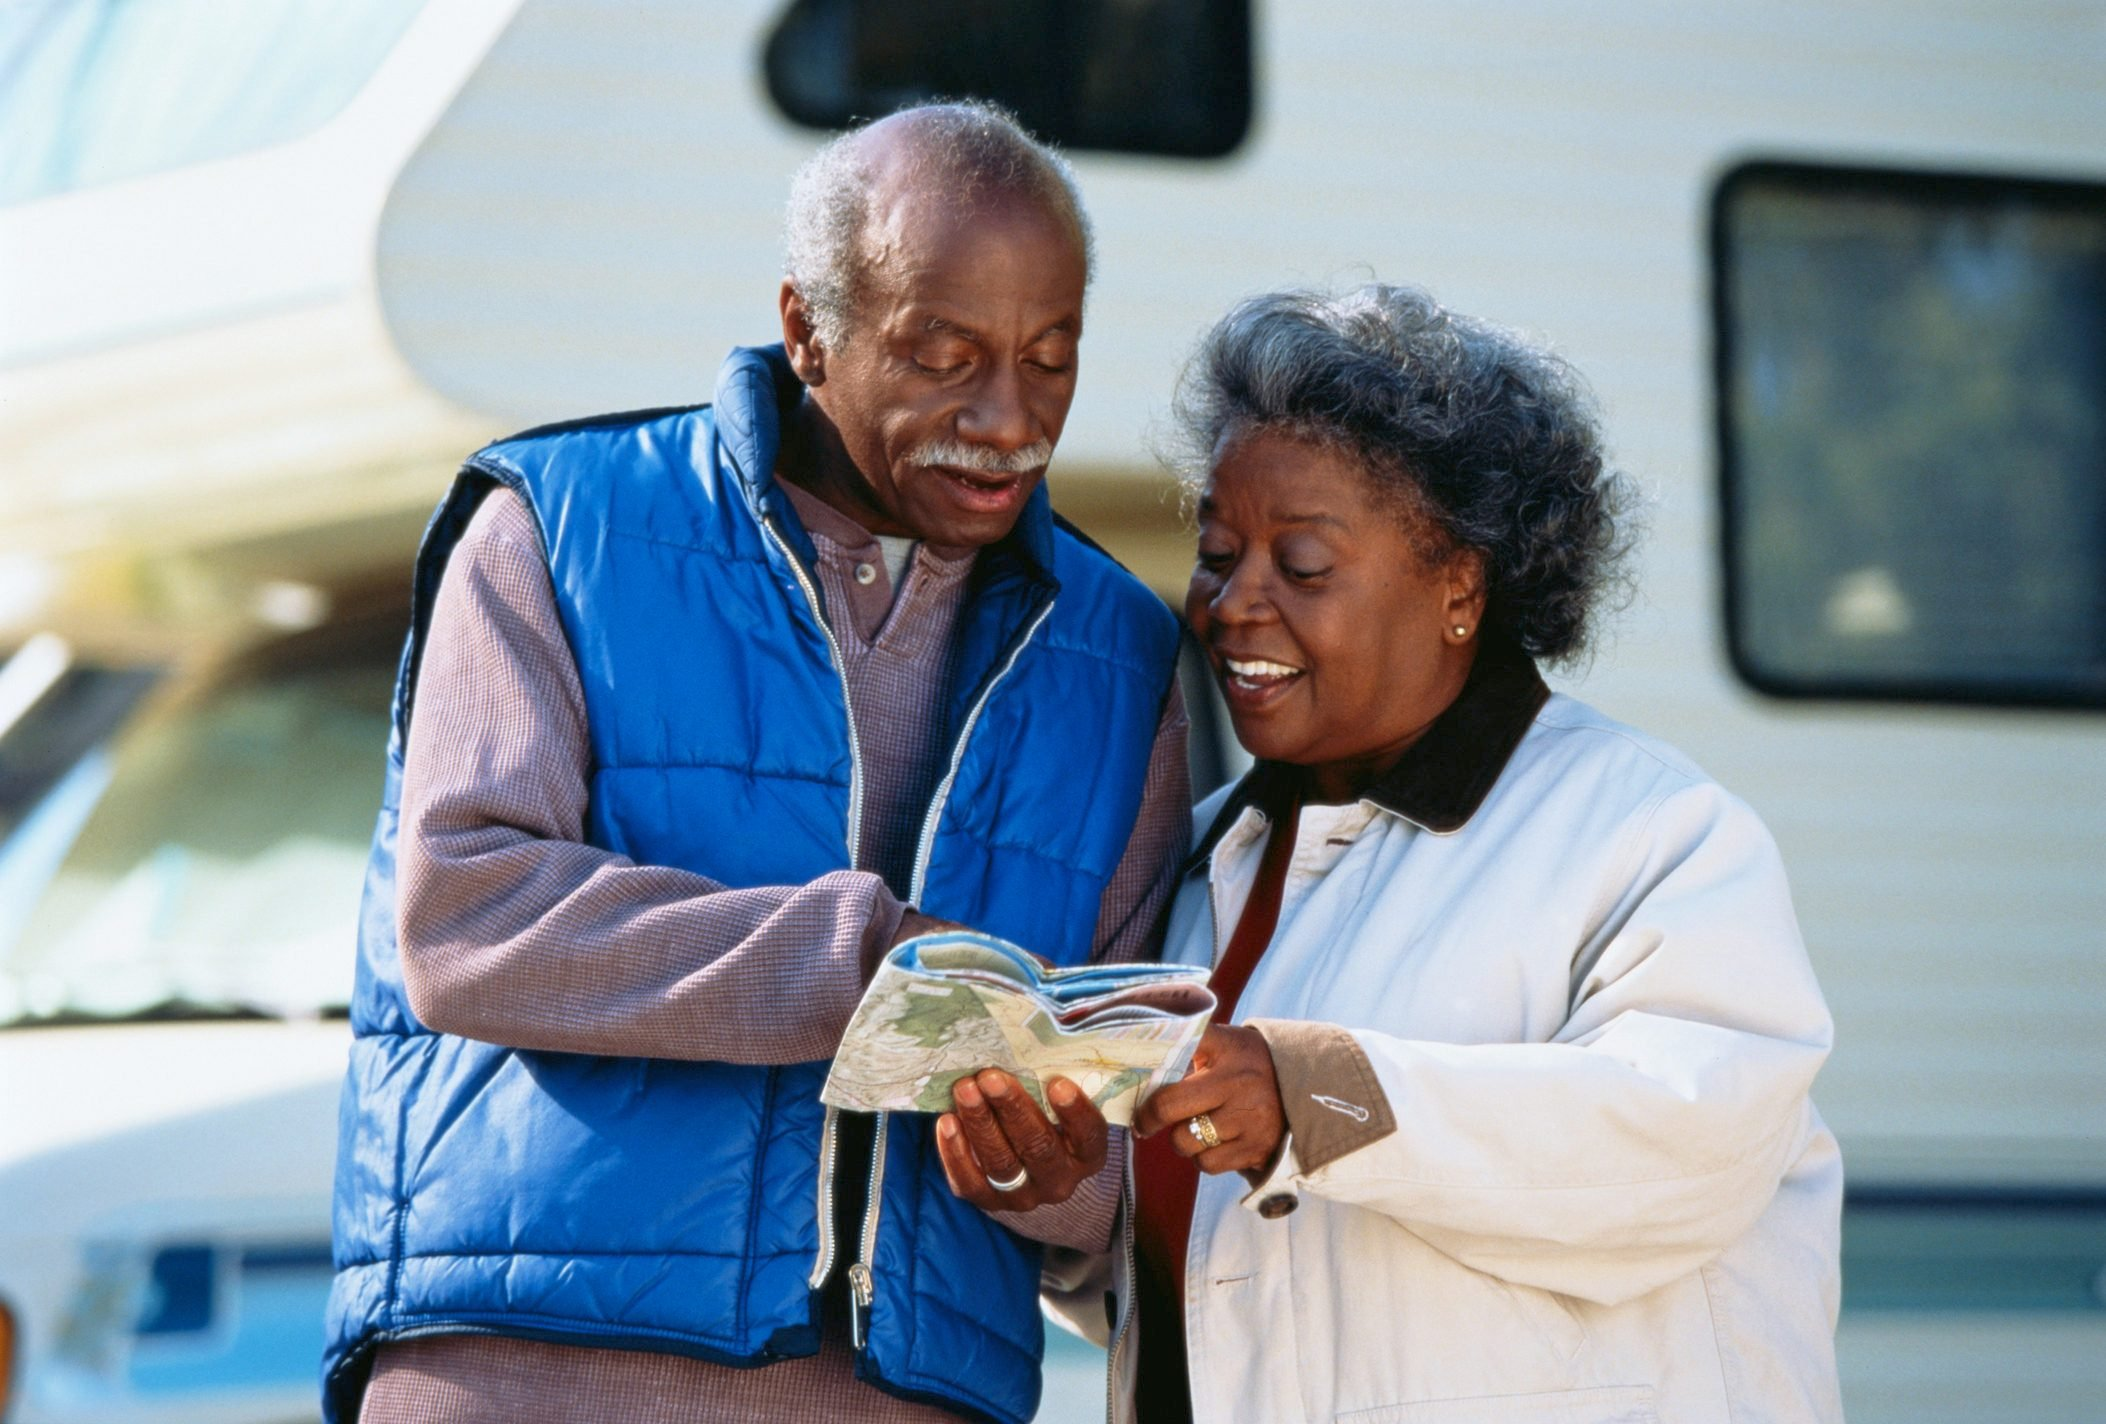 Mature couple by camper van looking at map